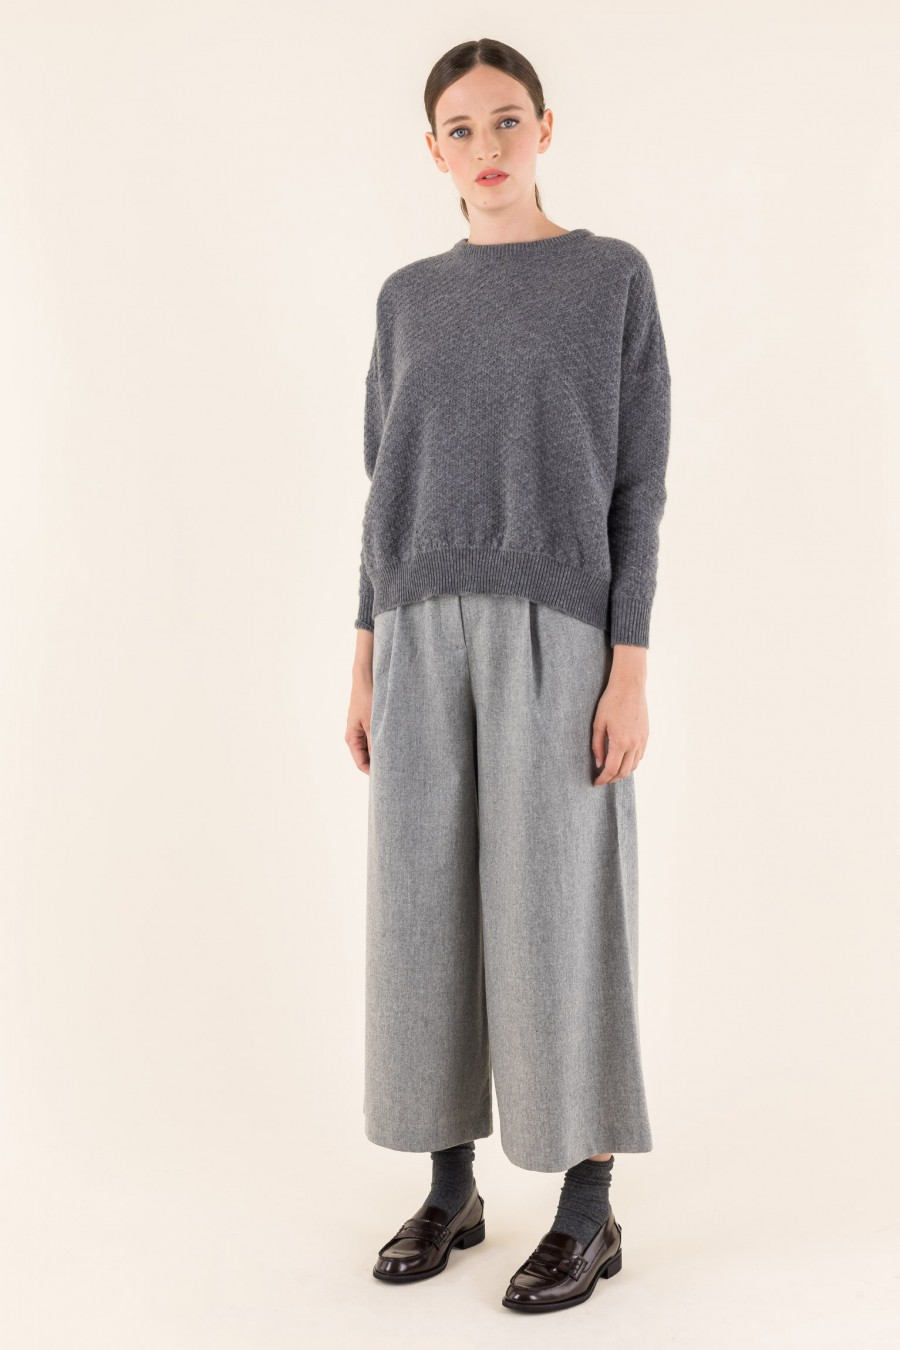 Over-fitting jumper